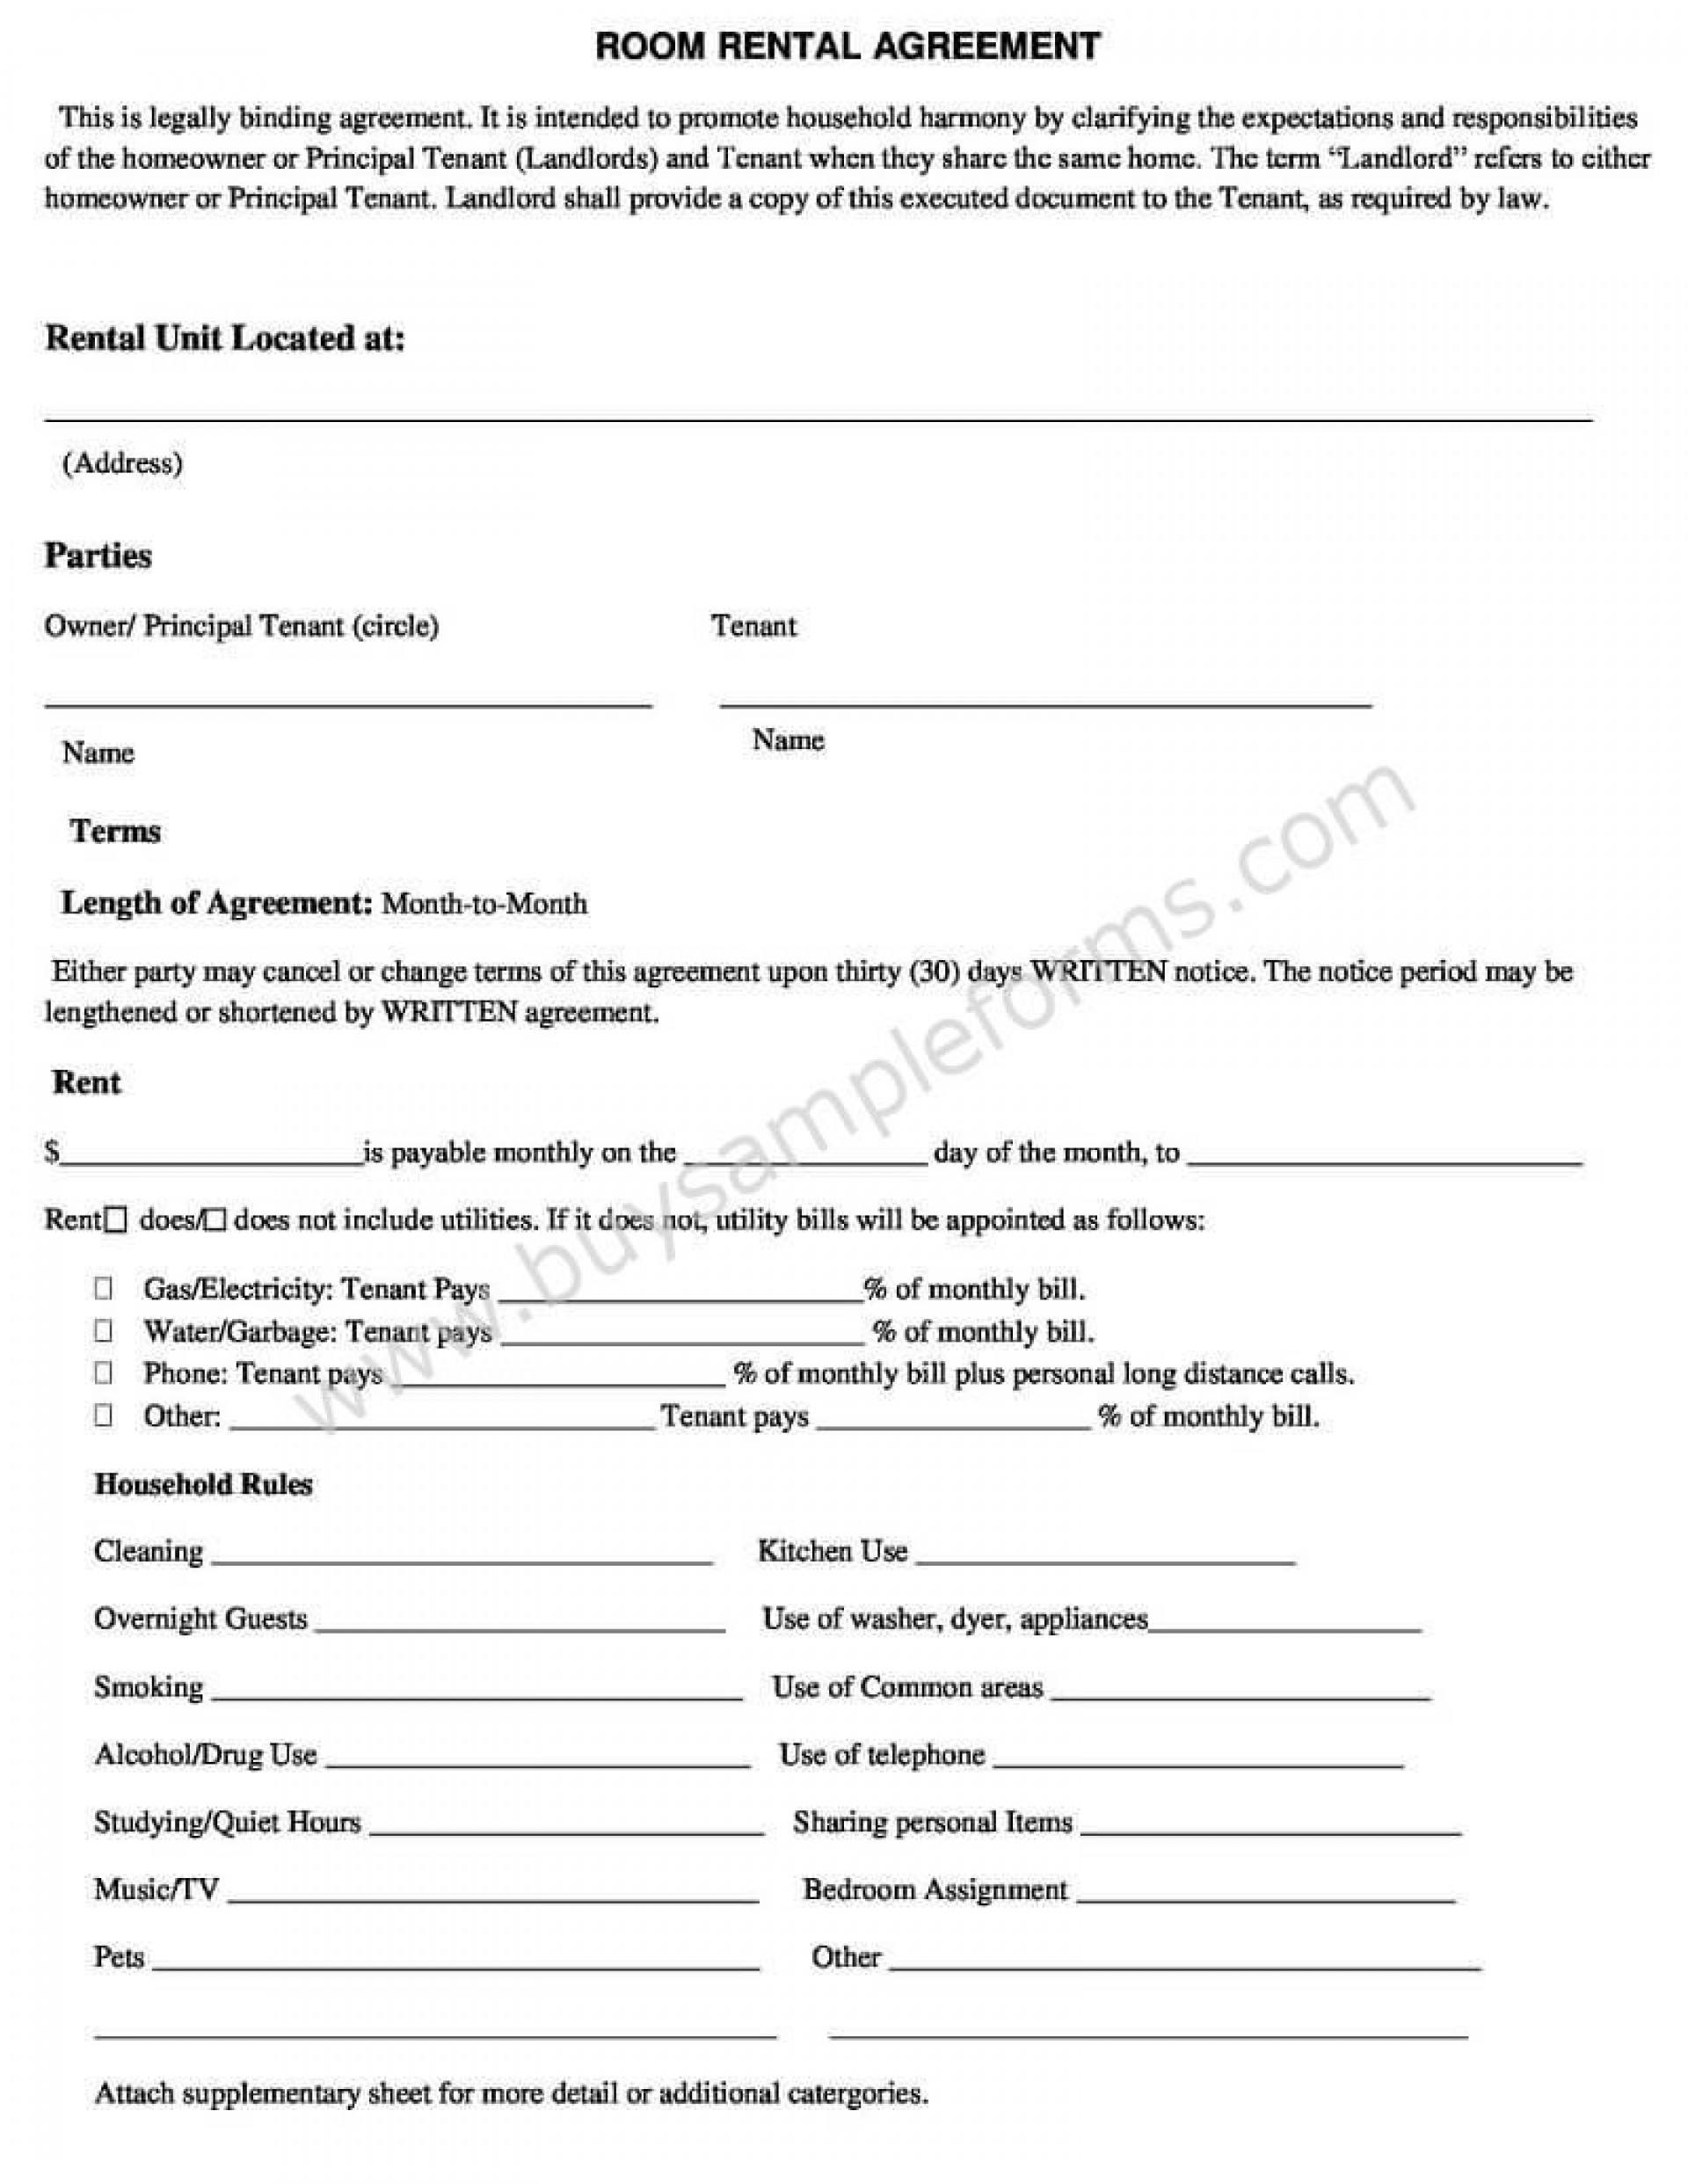 008 Incredible Template For Rental Agreement Example  Lease South Africa Free Property1920